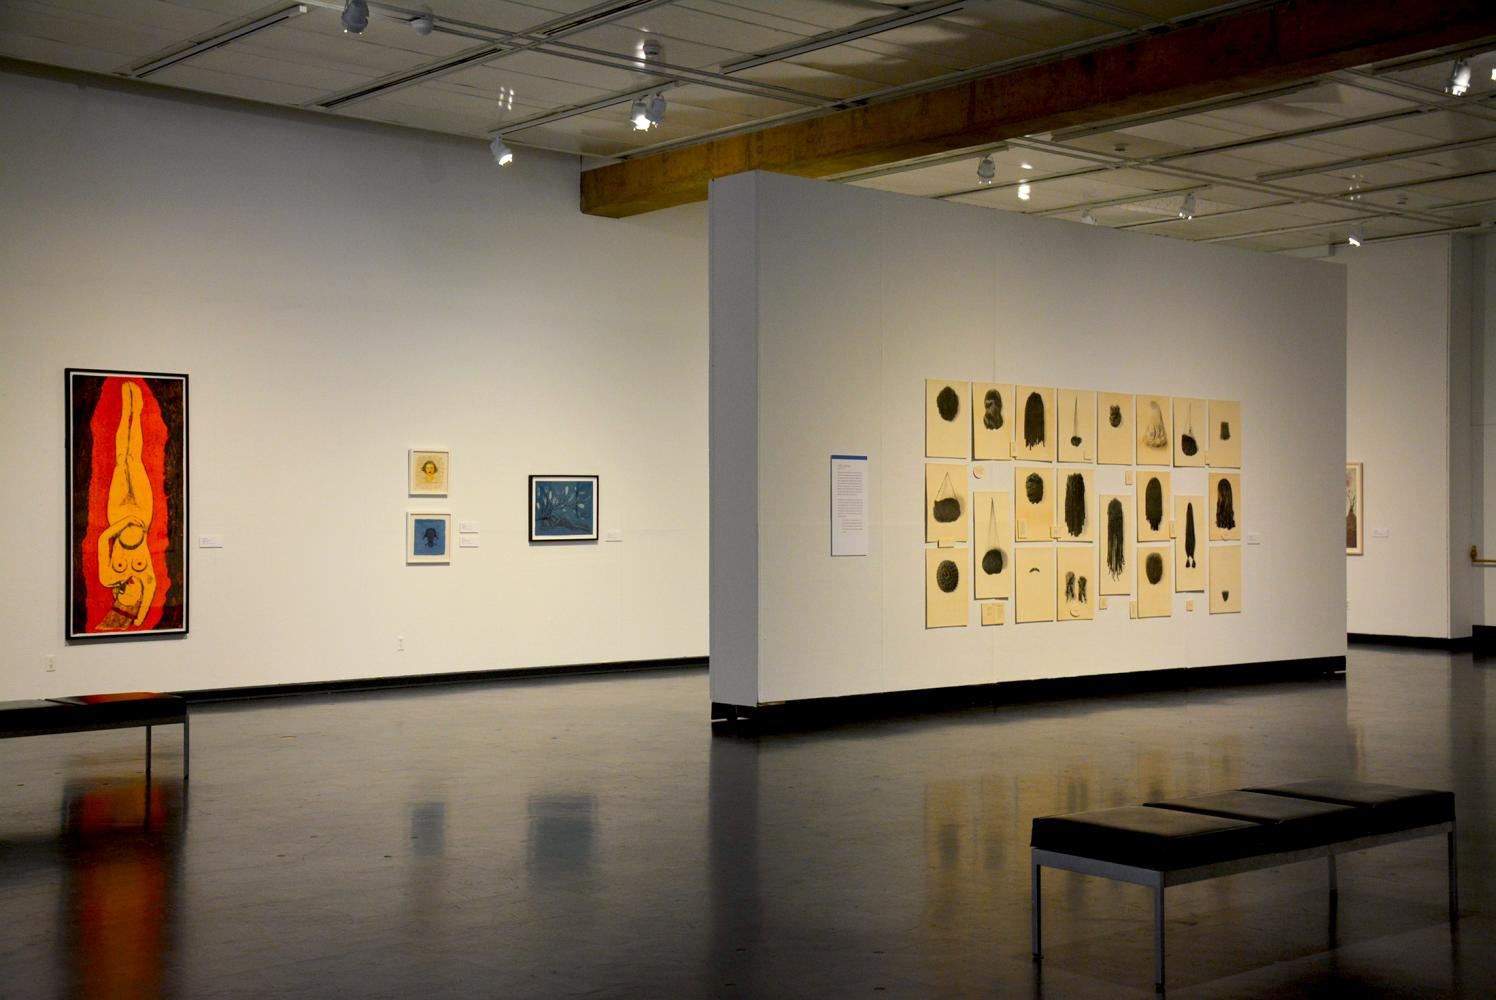 The WSU Museum of Art has opened an exhibit focused on female artists and the ways they contribute to artistic discussion. The exhibit features artwork from Africa, Asia, and North America.